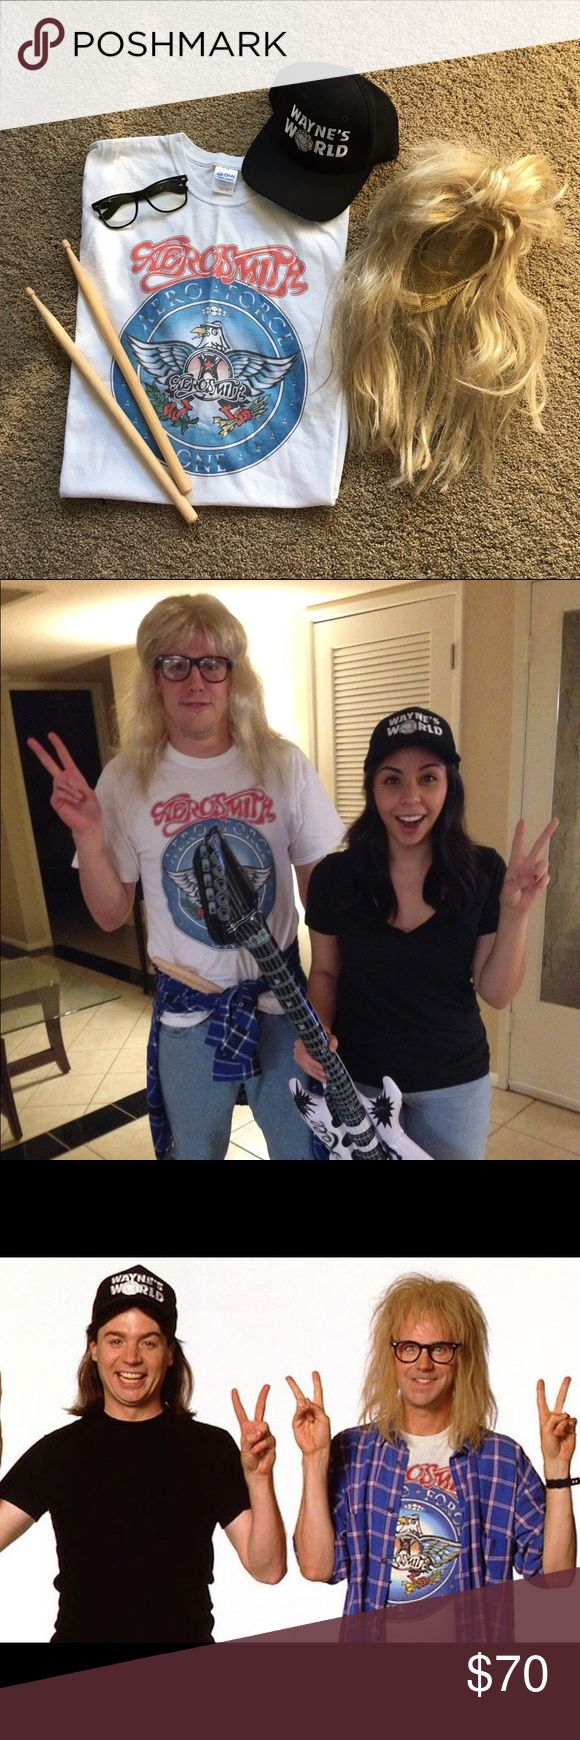 Wayne and Garth Costume from Wayne's World Great Halloween Costume! Includes - Wayne's World hat, Garth shirt, Garth wig, Garth glasses, Drumsticks. Just need some old blue jeans and a black shirt to complete the look. Hat is adjustable. Shirt is a Men's Large that fits both Medium and Large. Tops Tees - Short Sleeve